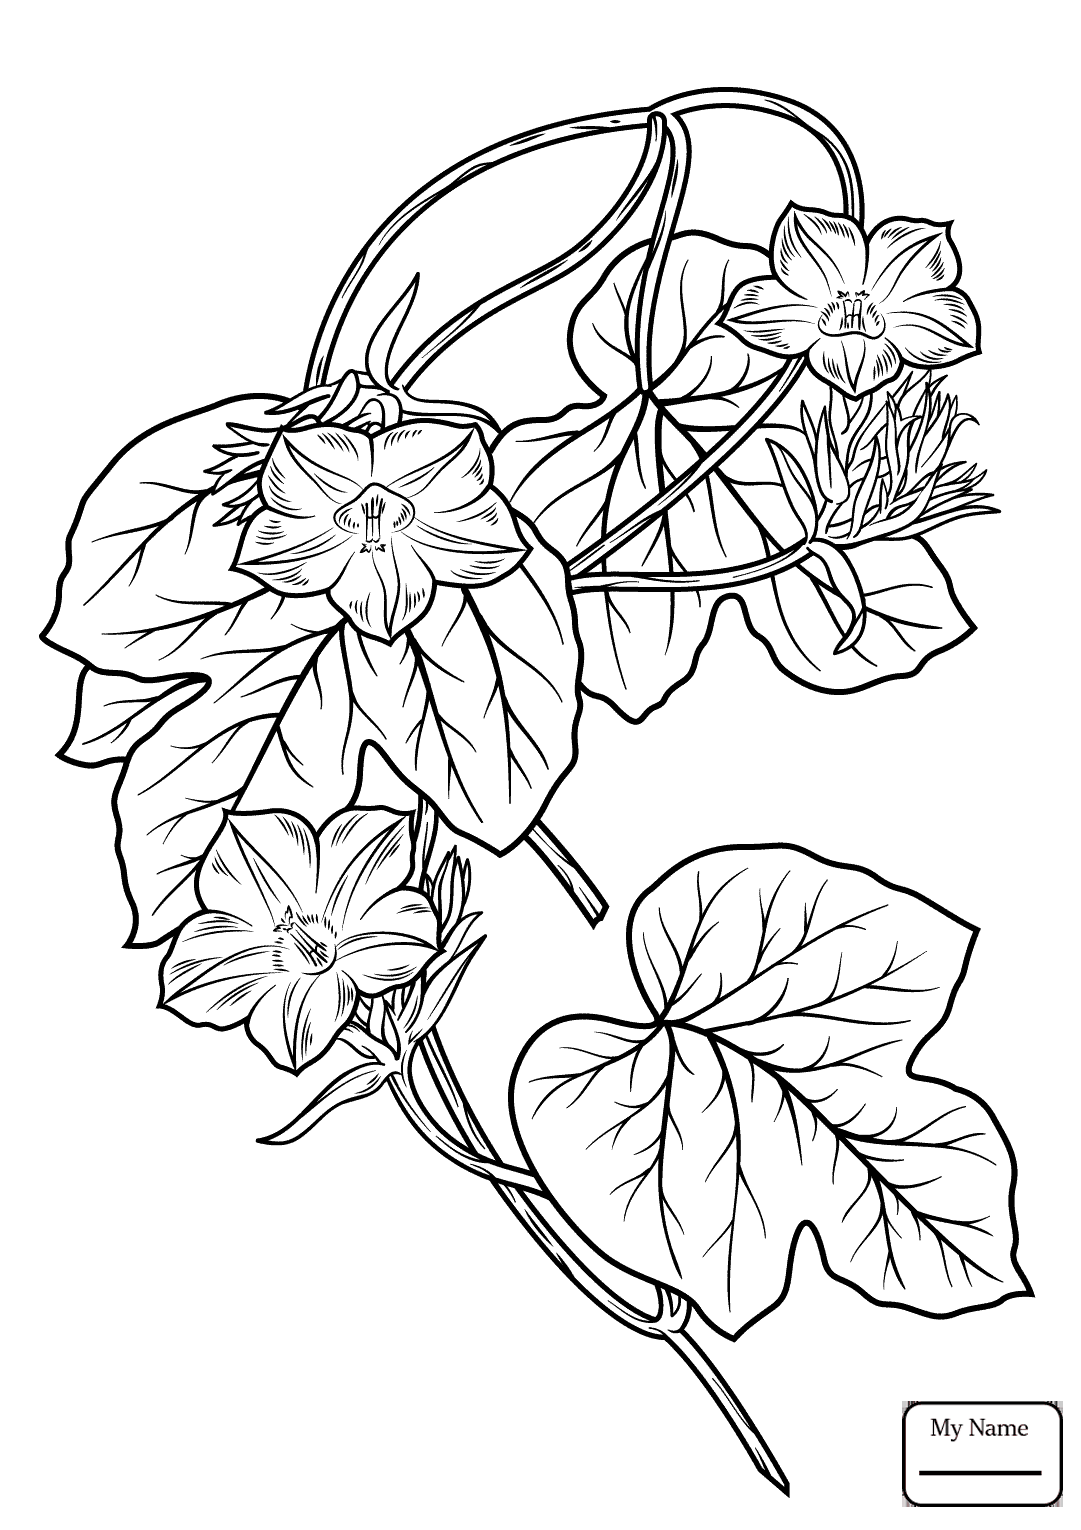 1081x1530 Coloring Pages For Kids Ivy Leaf Morning Glory Flowers